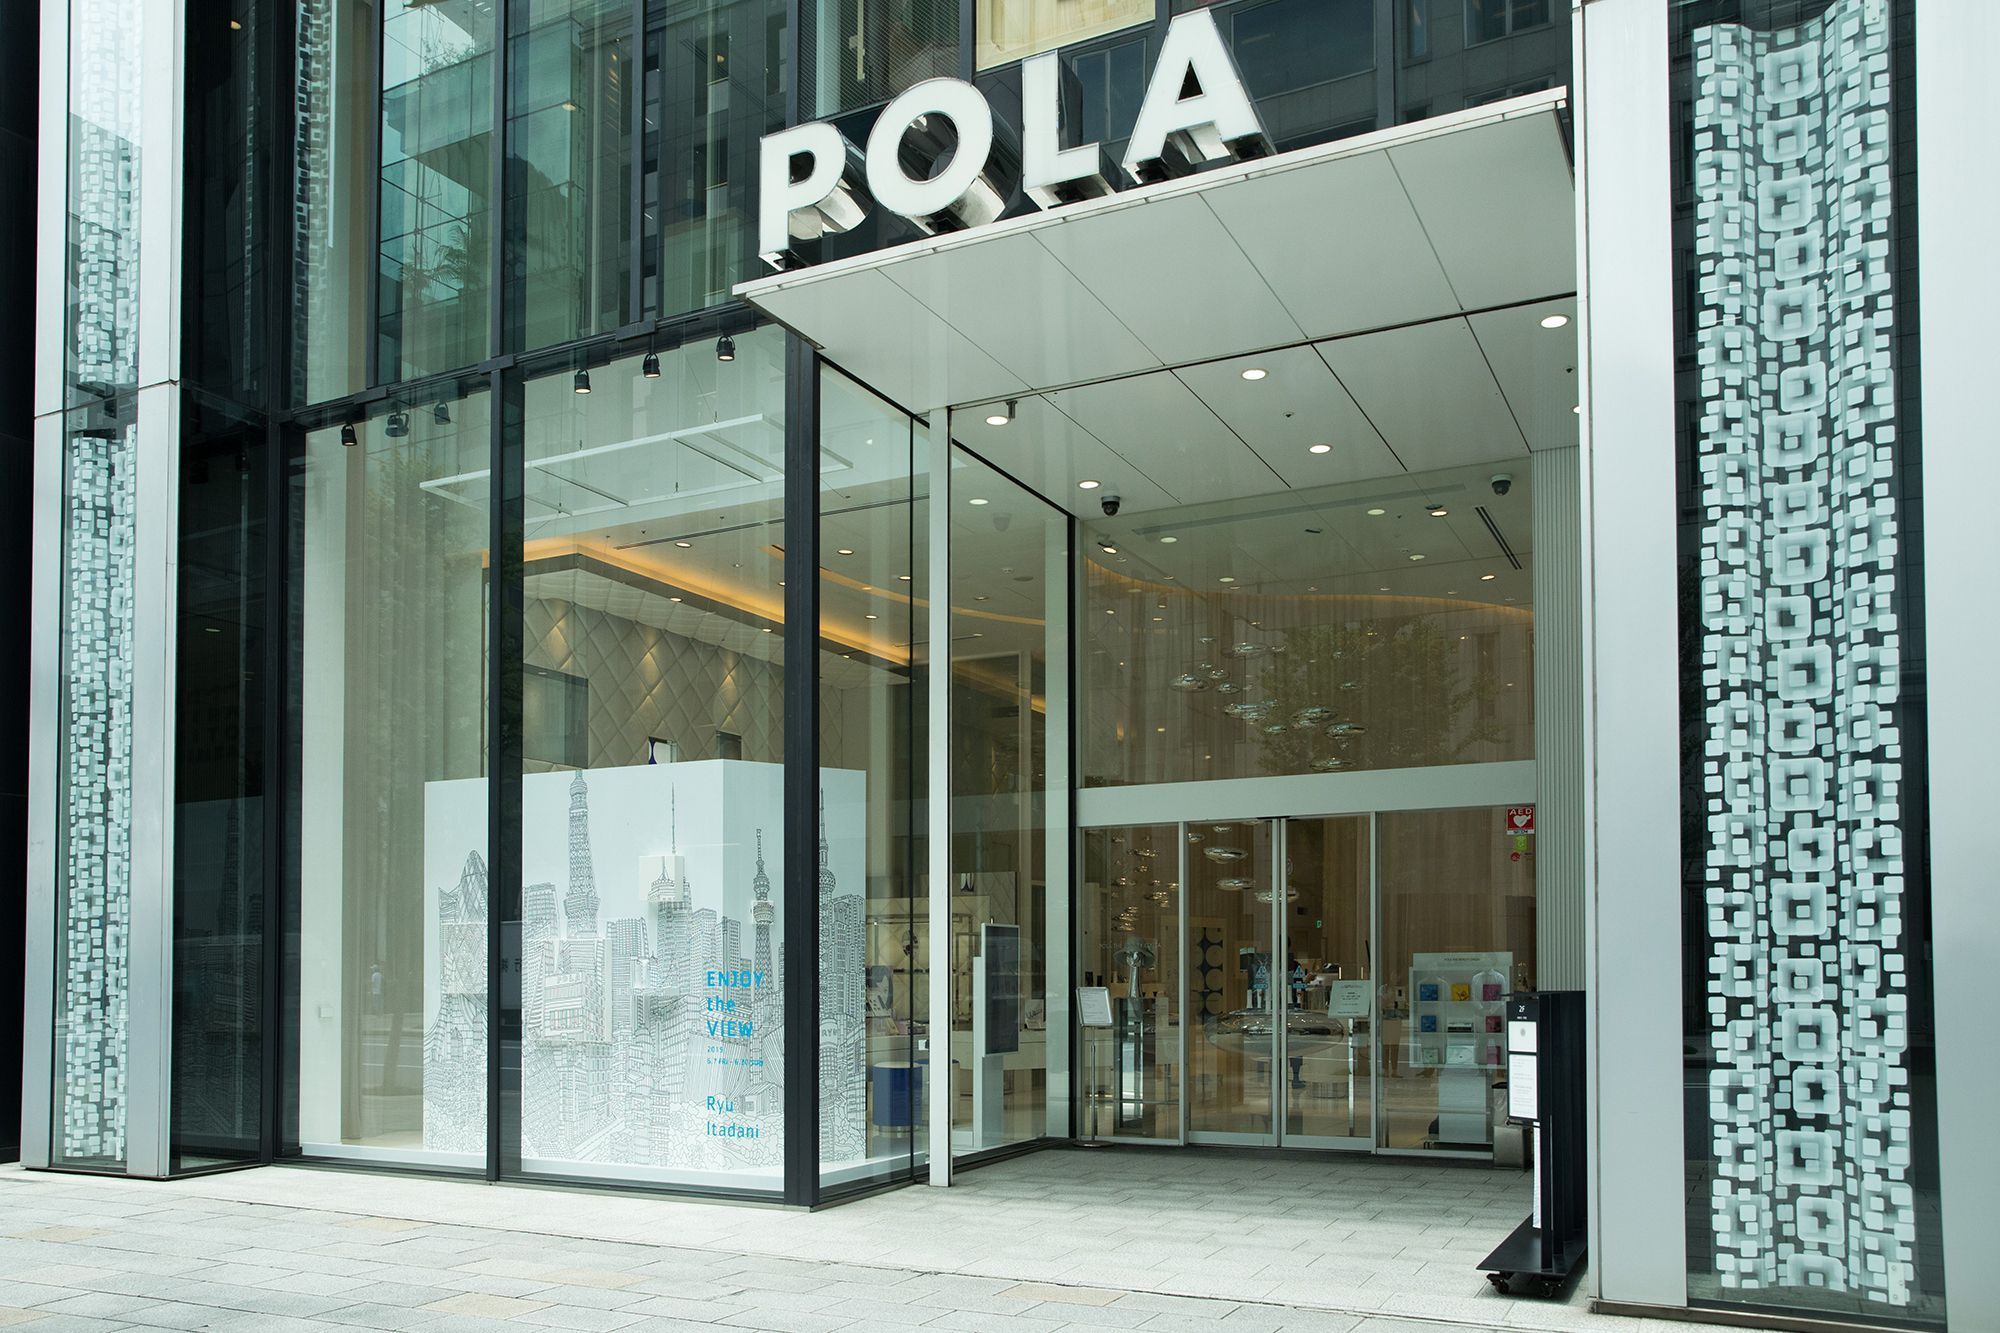 POLA THE BEAUTY GINZA is situated along the Ginza Chuo-Street. The location is easily accessible from the Ginza-Itchome Station.